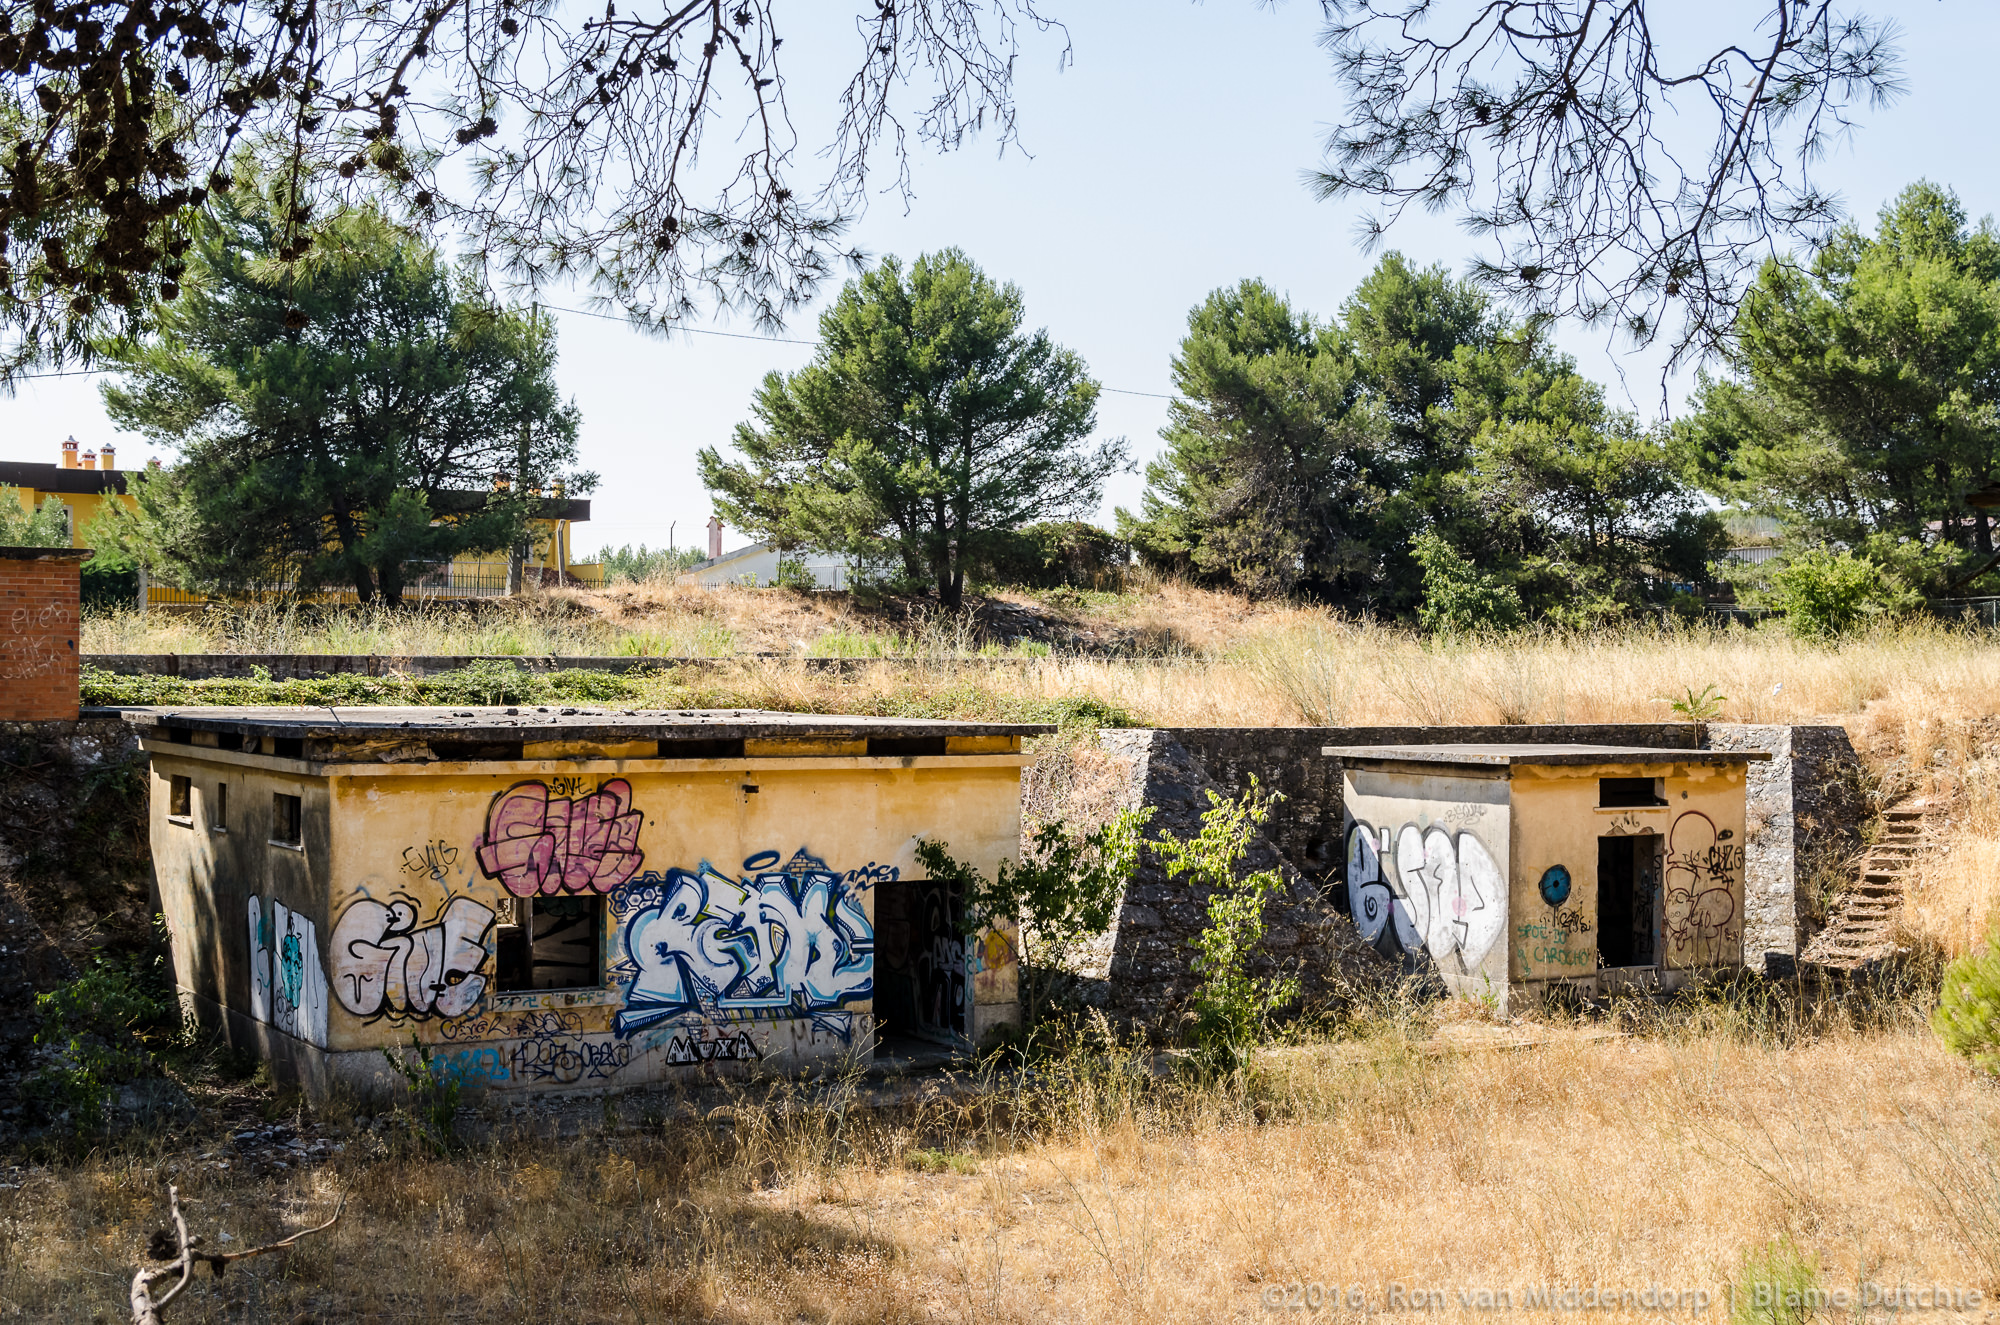 Junkie outhouse